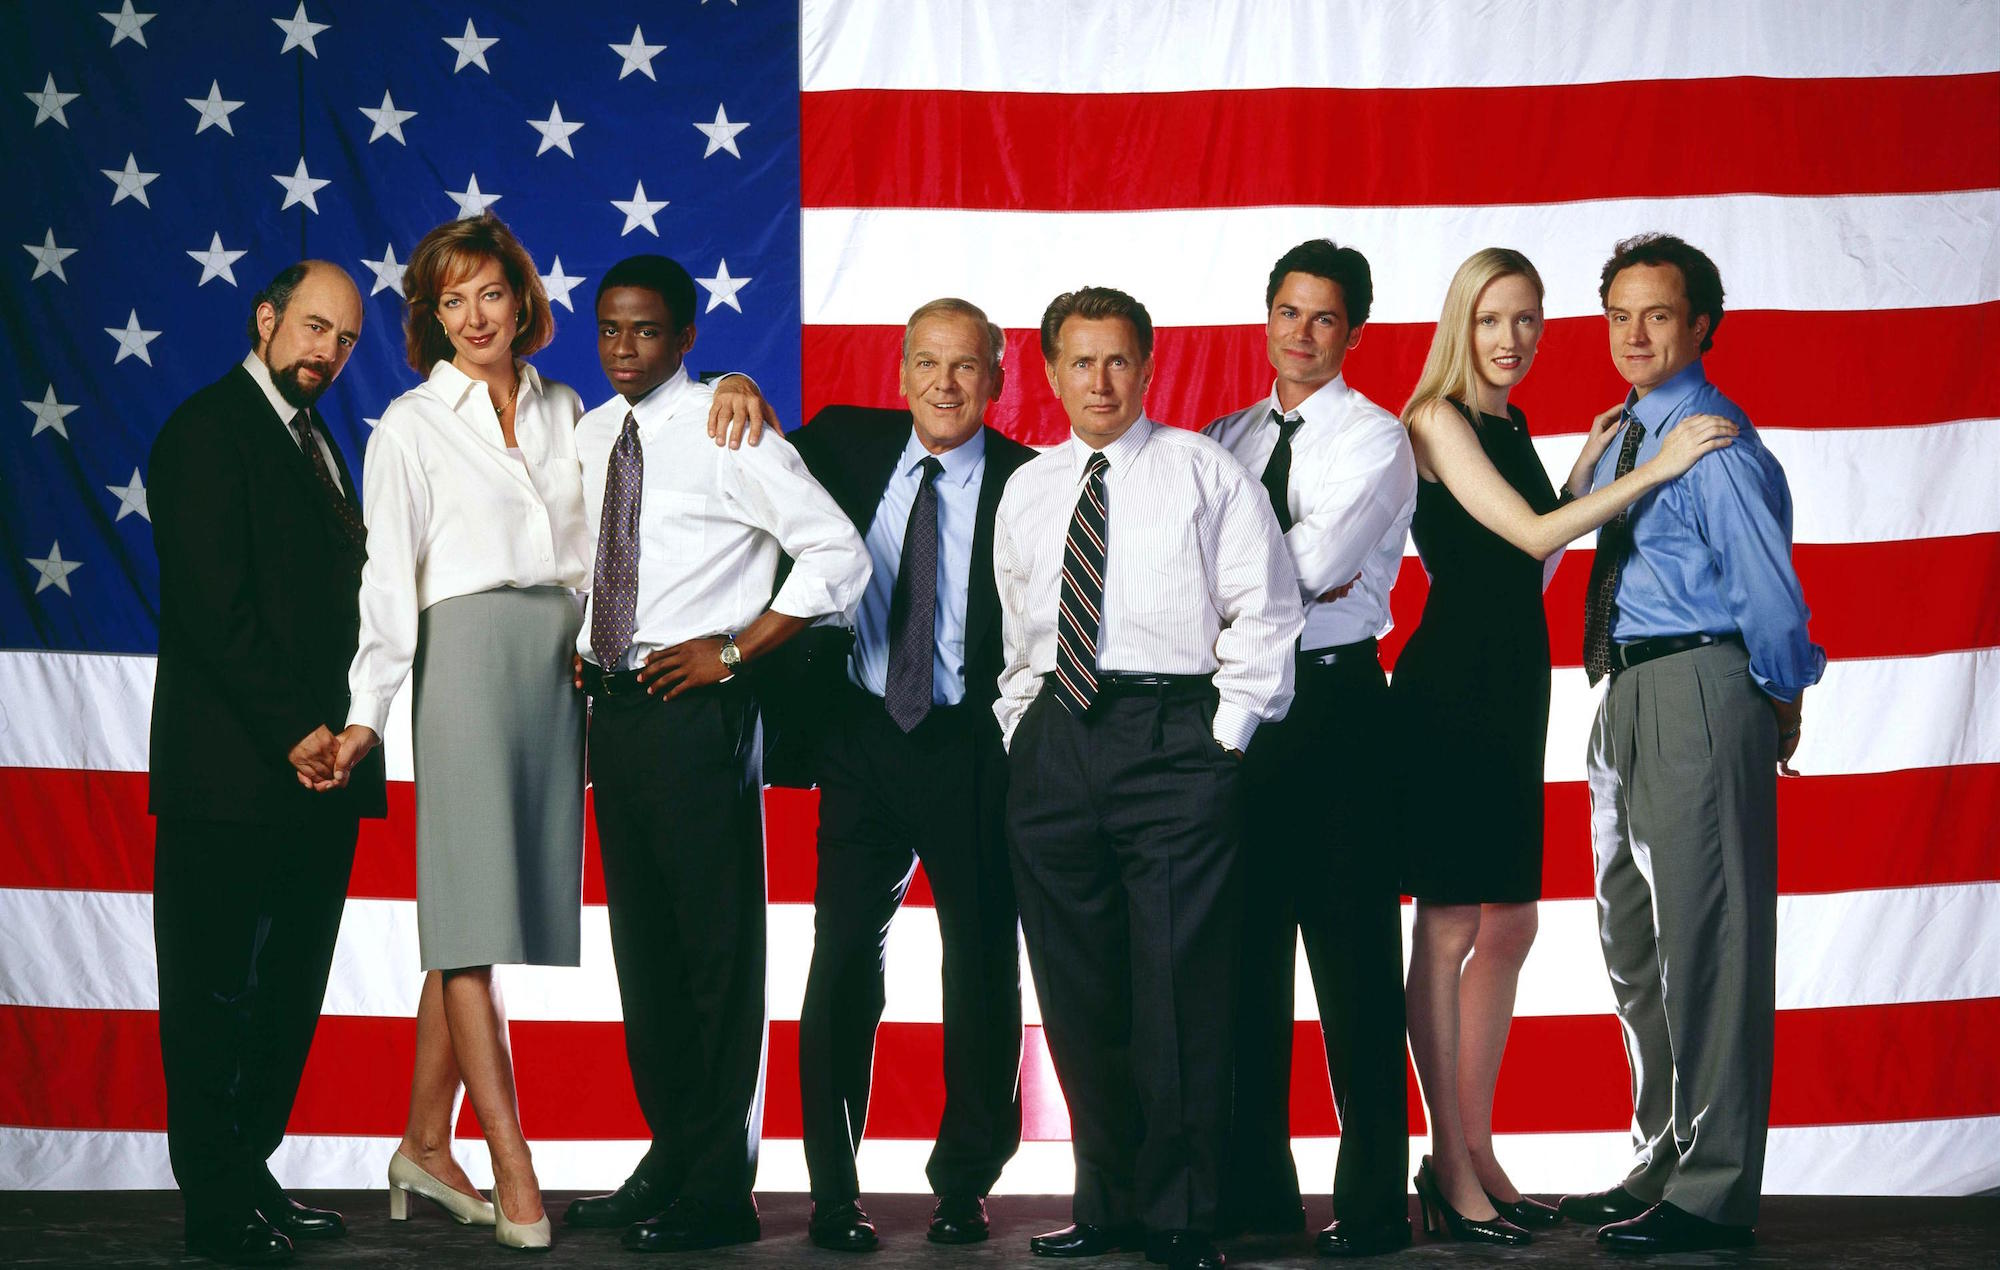 'West Wing' special reunion confirmed to promote voting in 2020 election